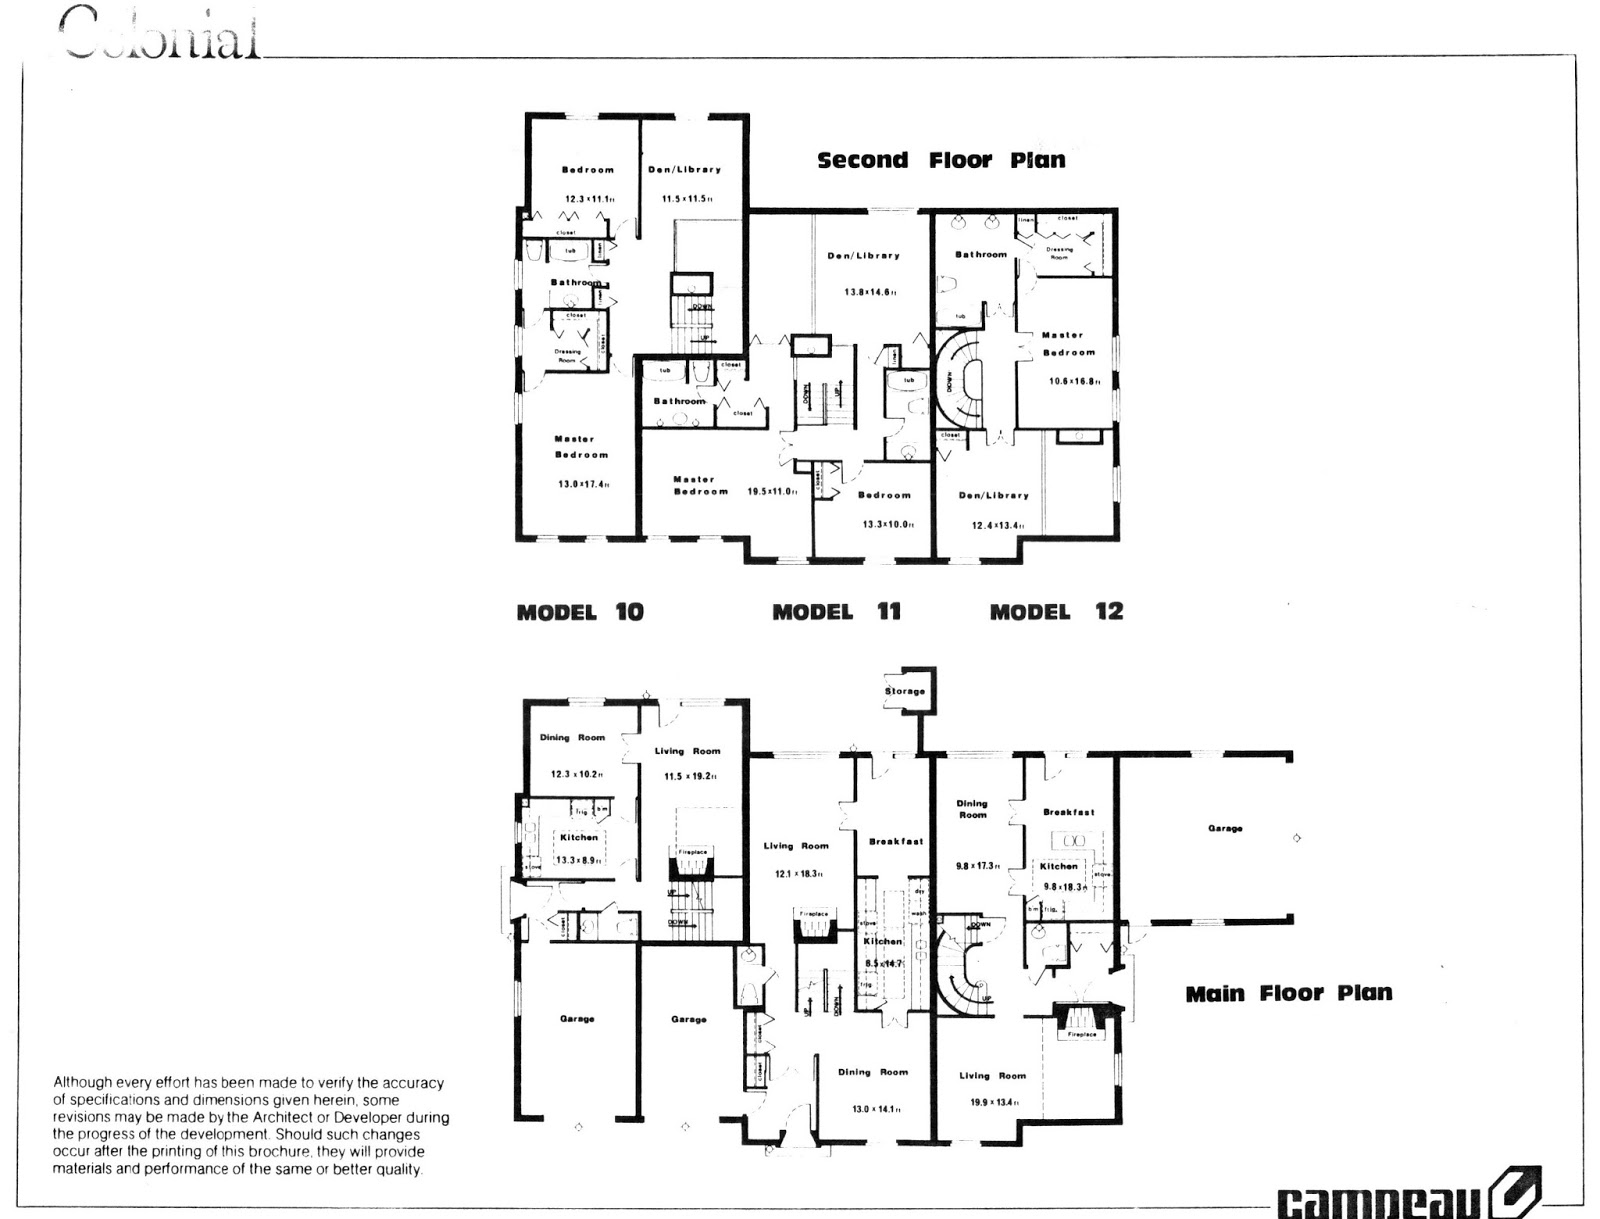 Cabin House Plans besides New Mid Century Modern Design The Montauk moreover munity Spotlight Lynwood By Edstan as well Historic Mid Century Modern House Plans For Sale Today additionally 279363983108854586. on home builder floor plans mid century modern